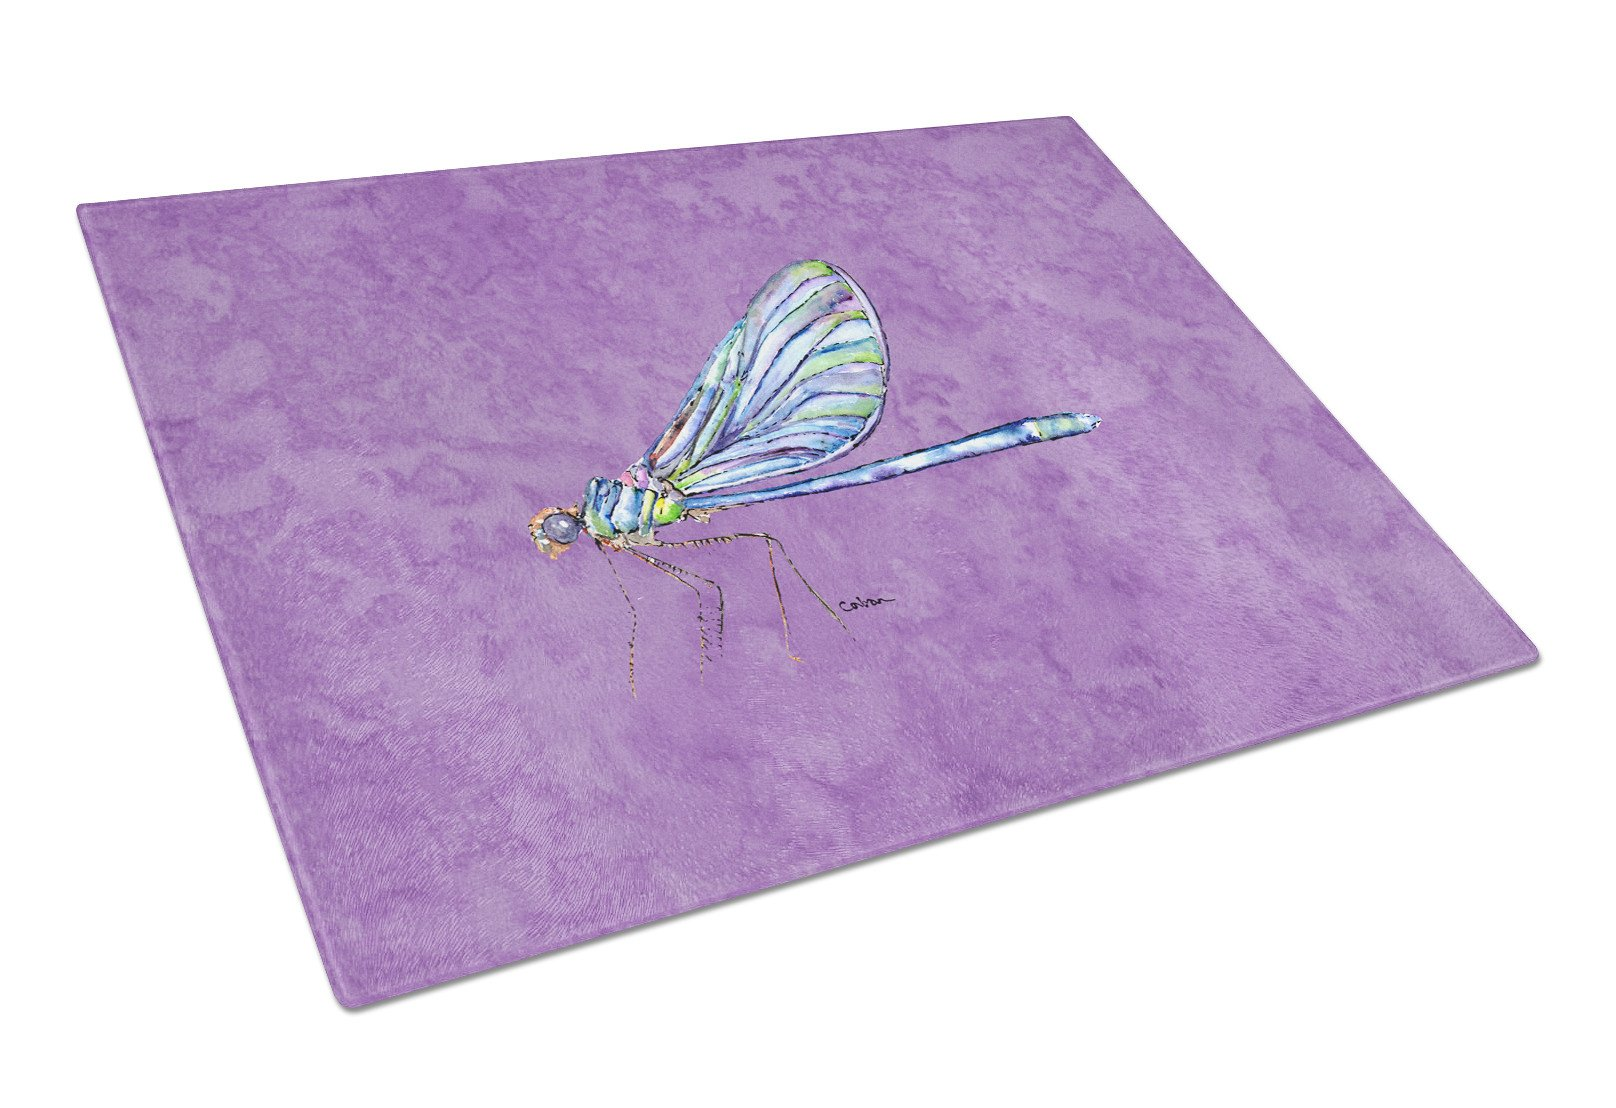 Dragonfly on Purple Glass Cutting Board Large by Caroline's Treasures